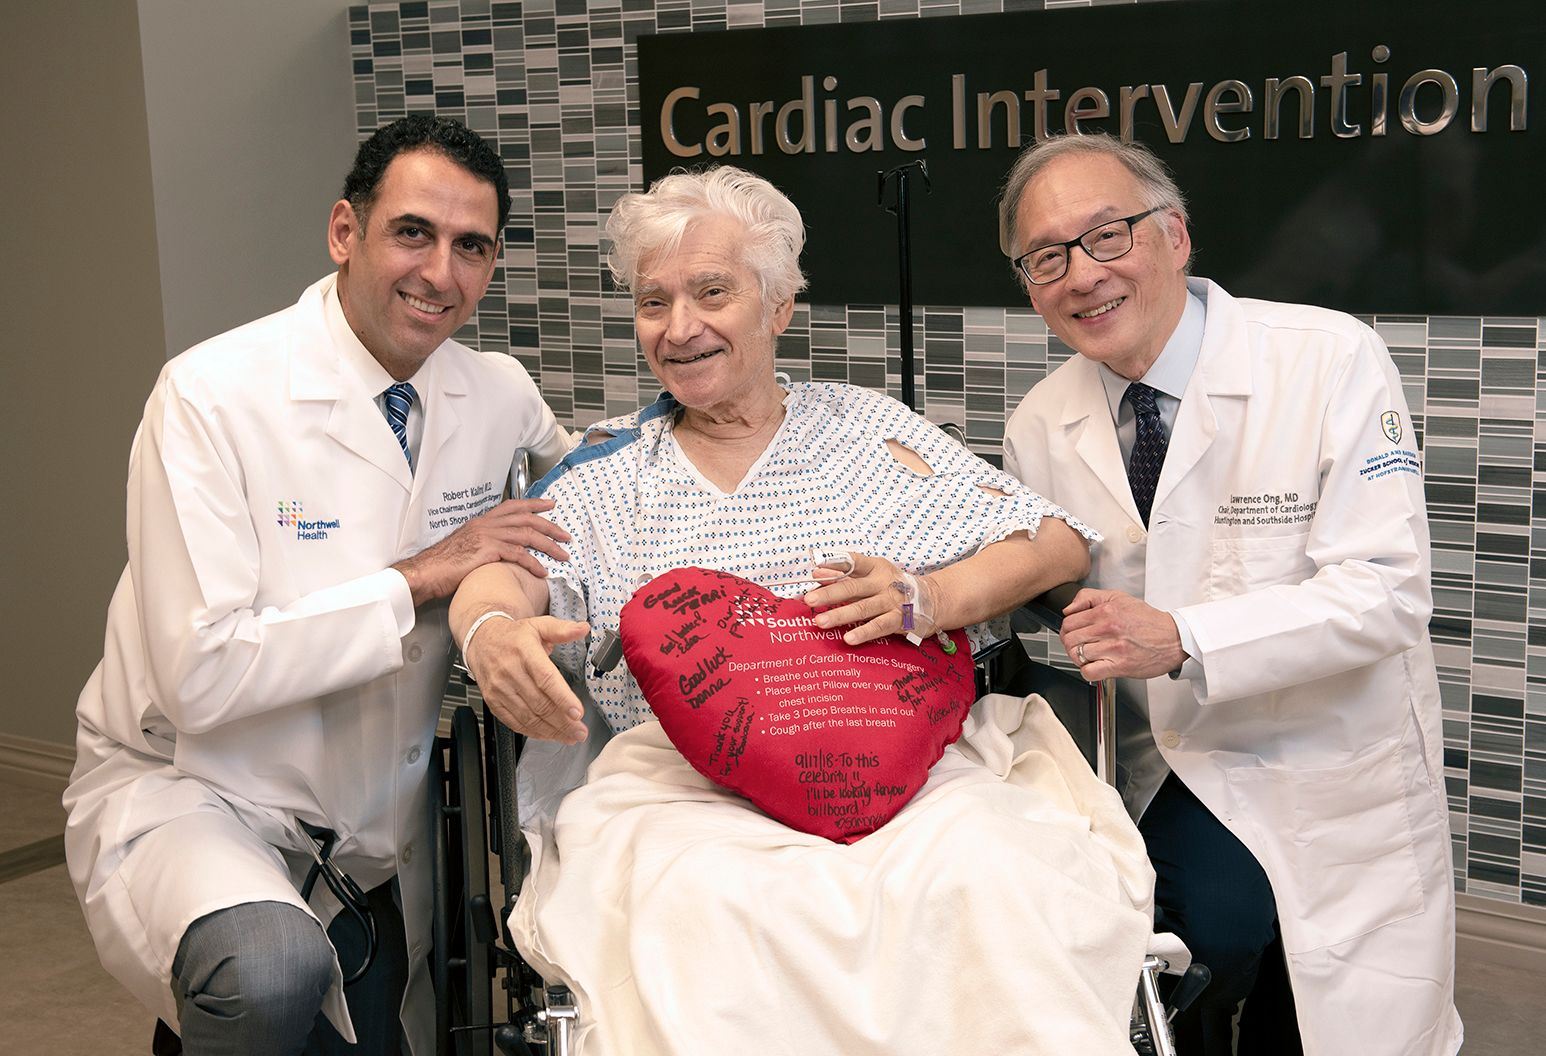 An elderly male patient with white hair wearing a patient gown is sitting in a wheel chair holding a heart pillow. Two doctors wearing Northwell branded white coats kneel beside him and smile.